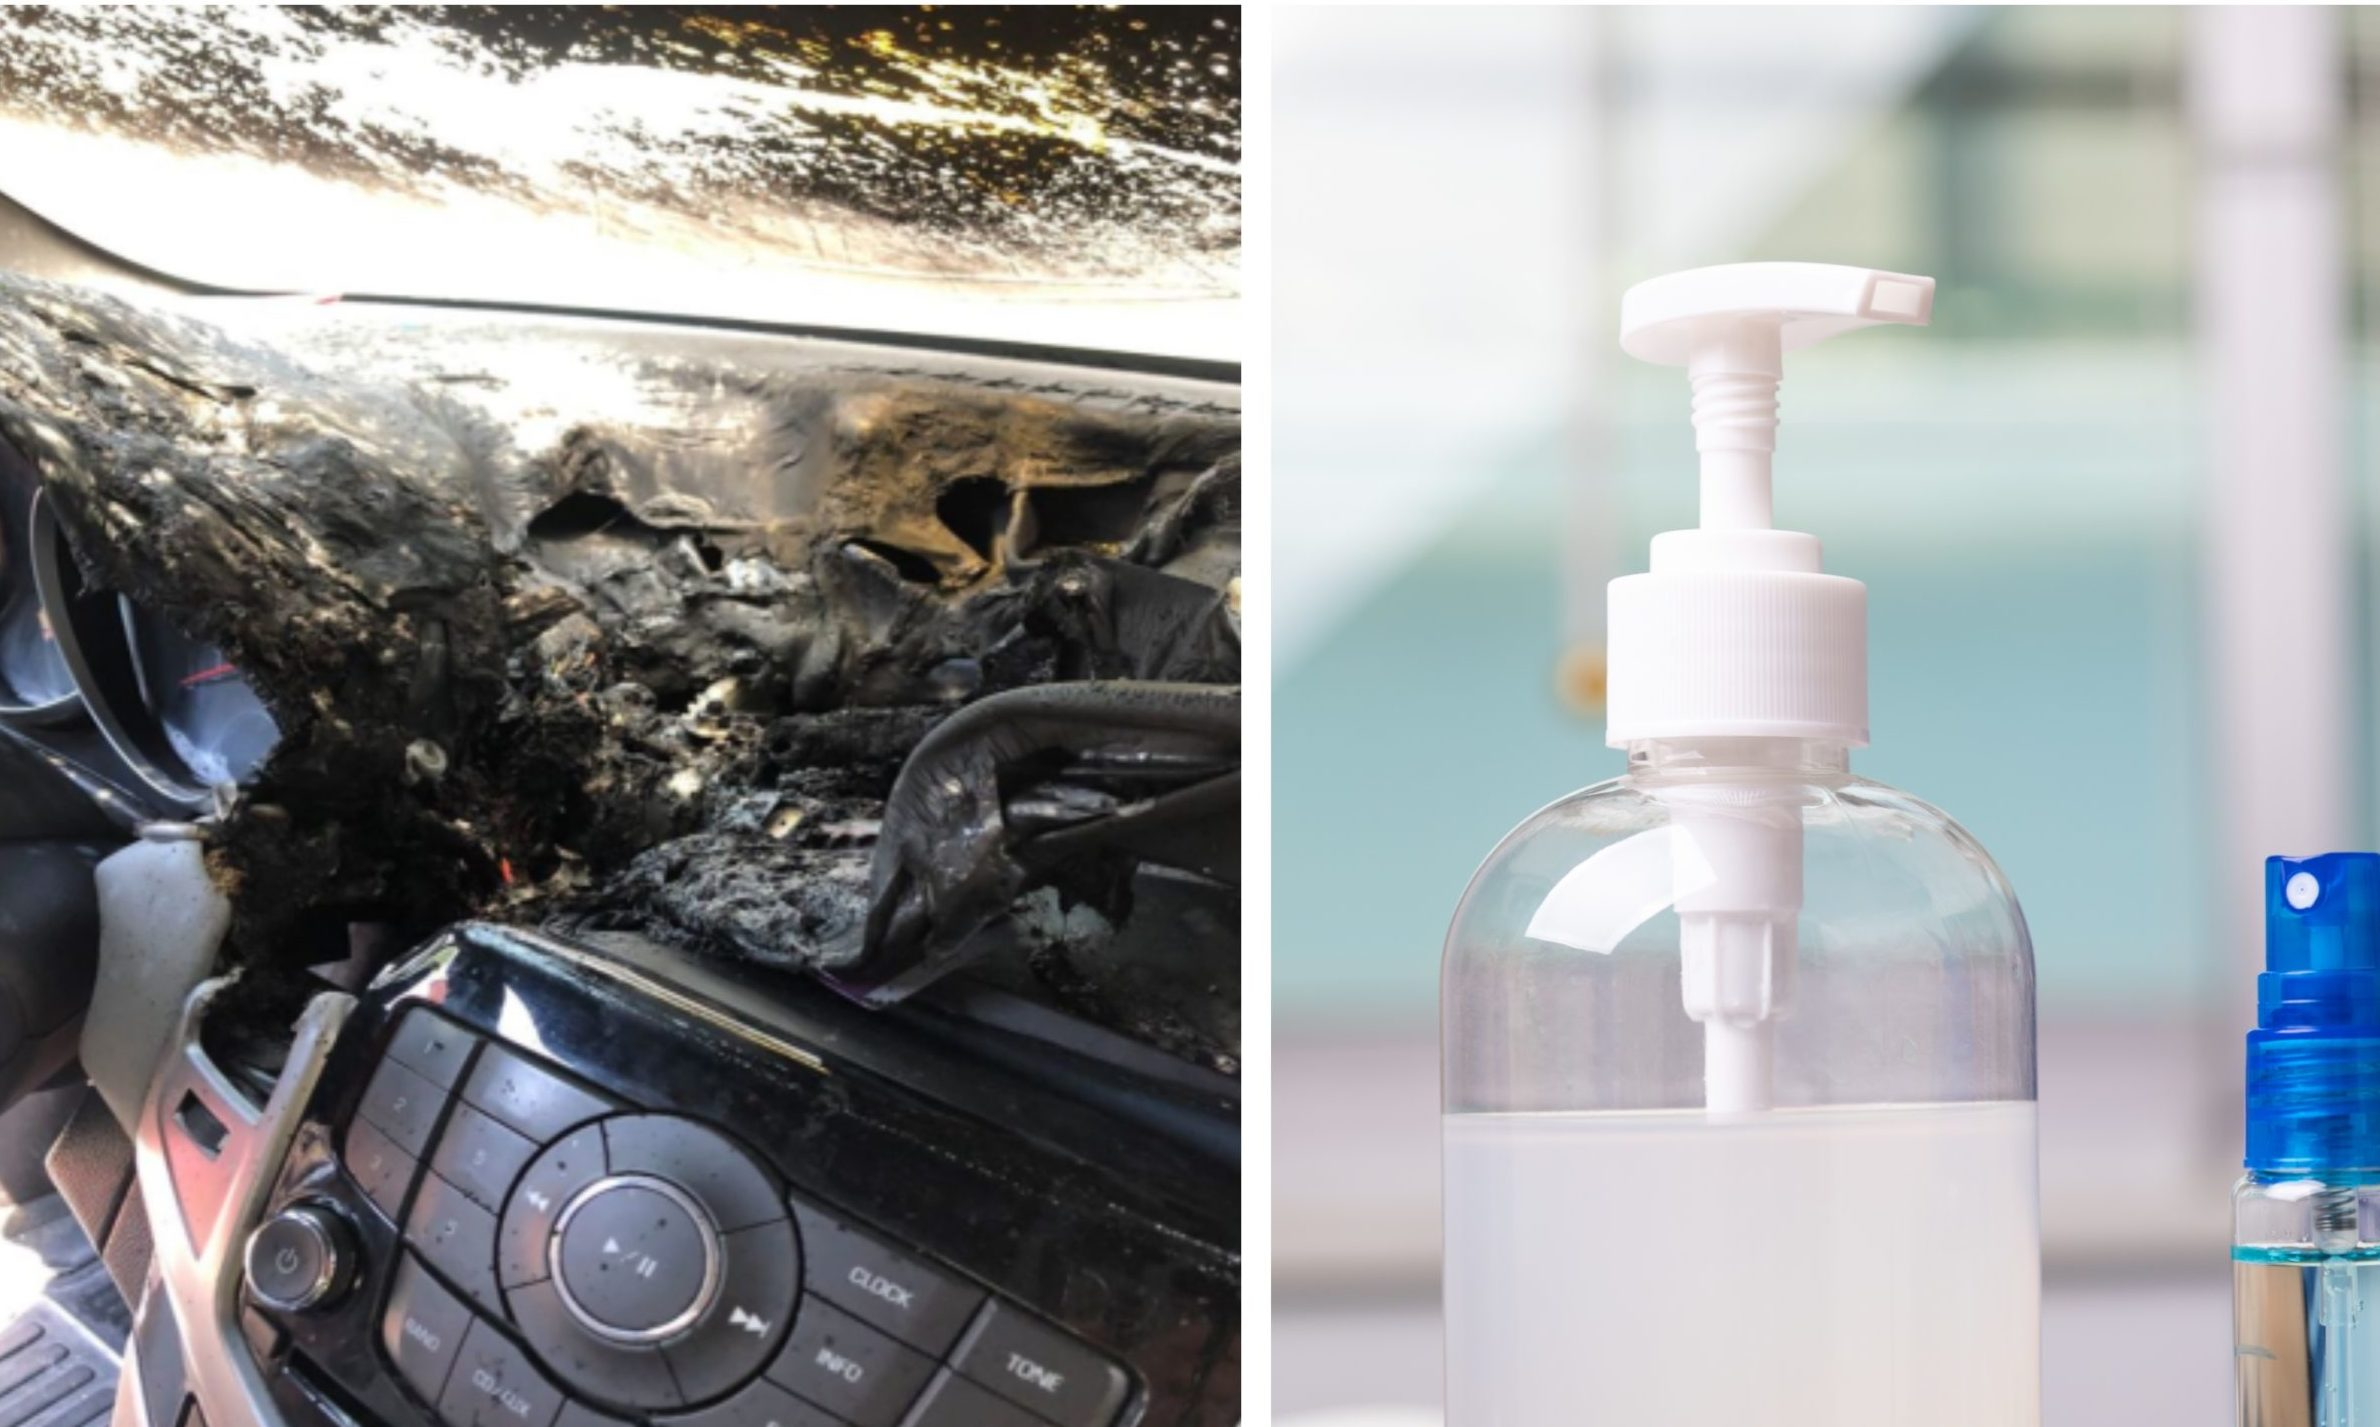 A warning has been issued about leaving hand gel bottles in cars.